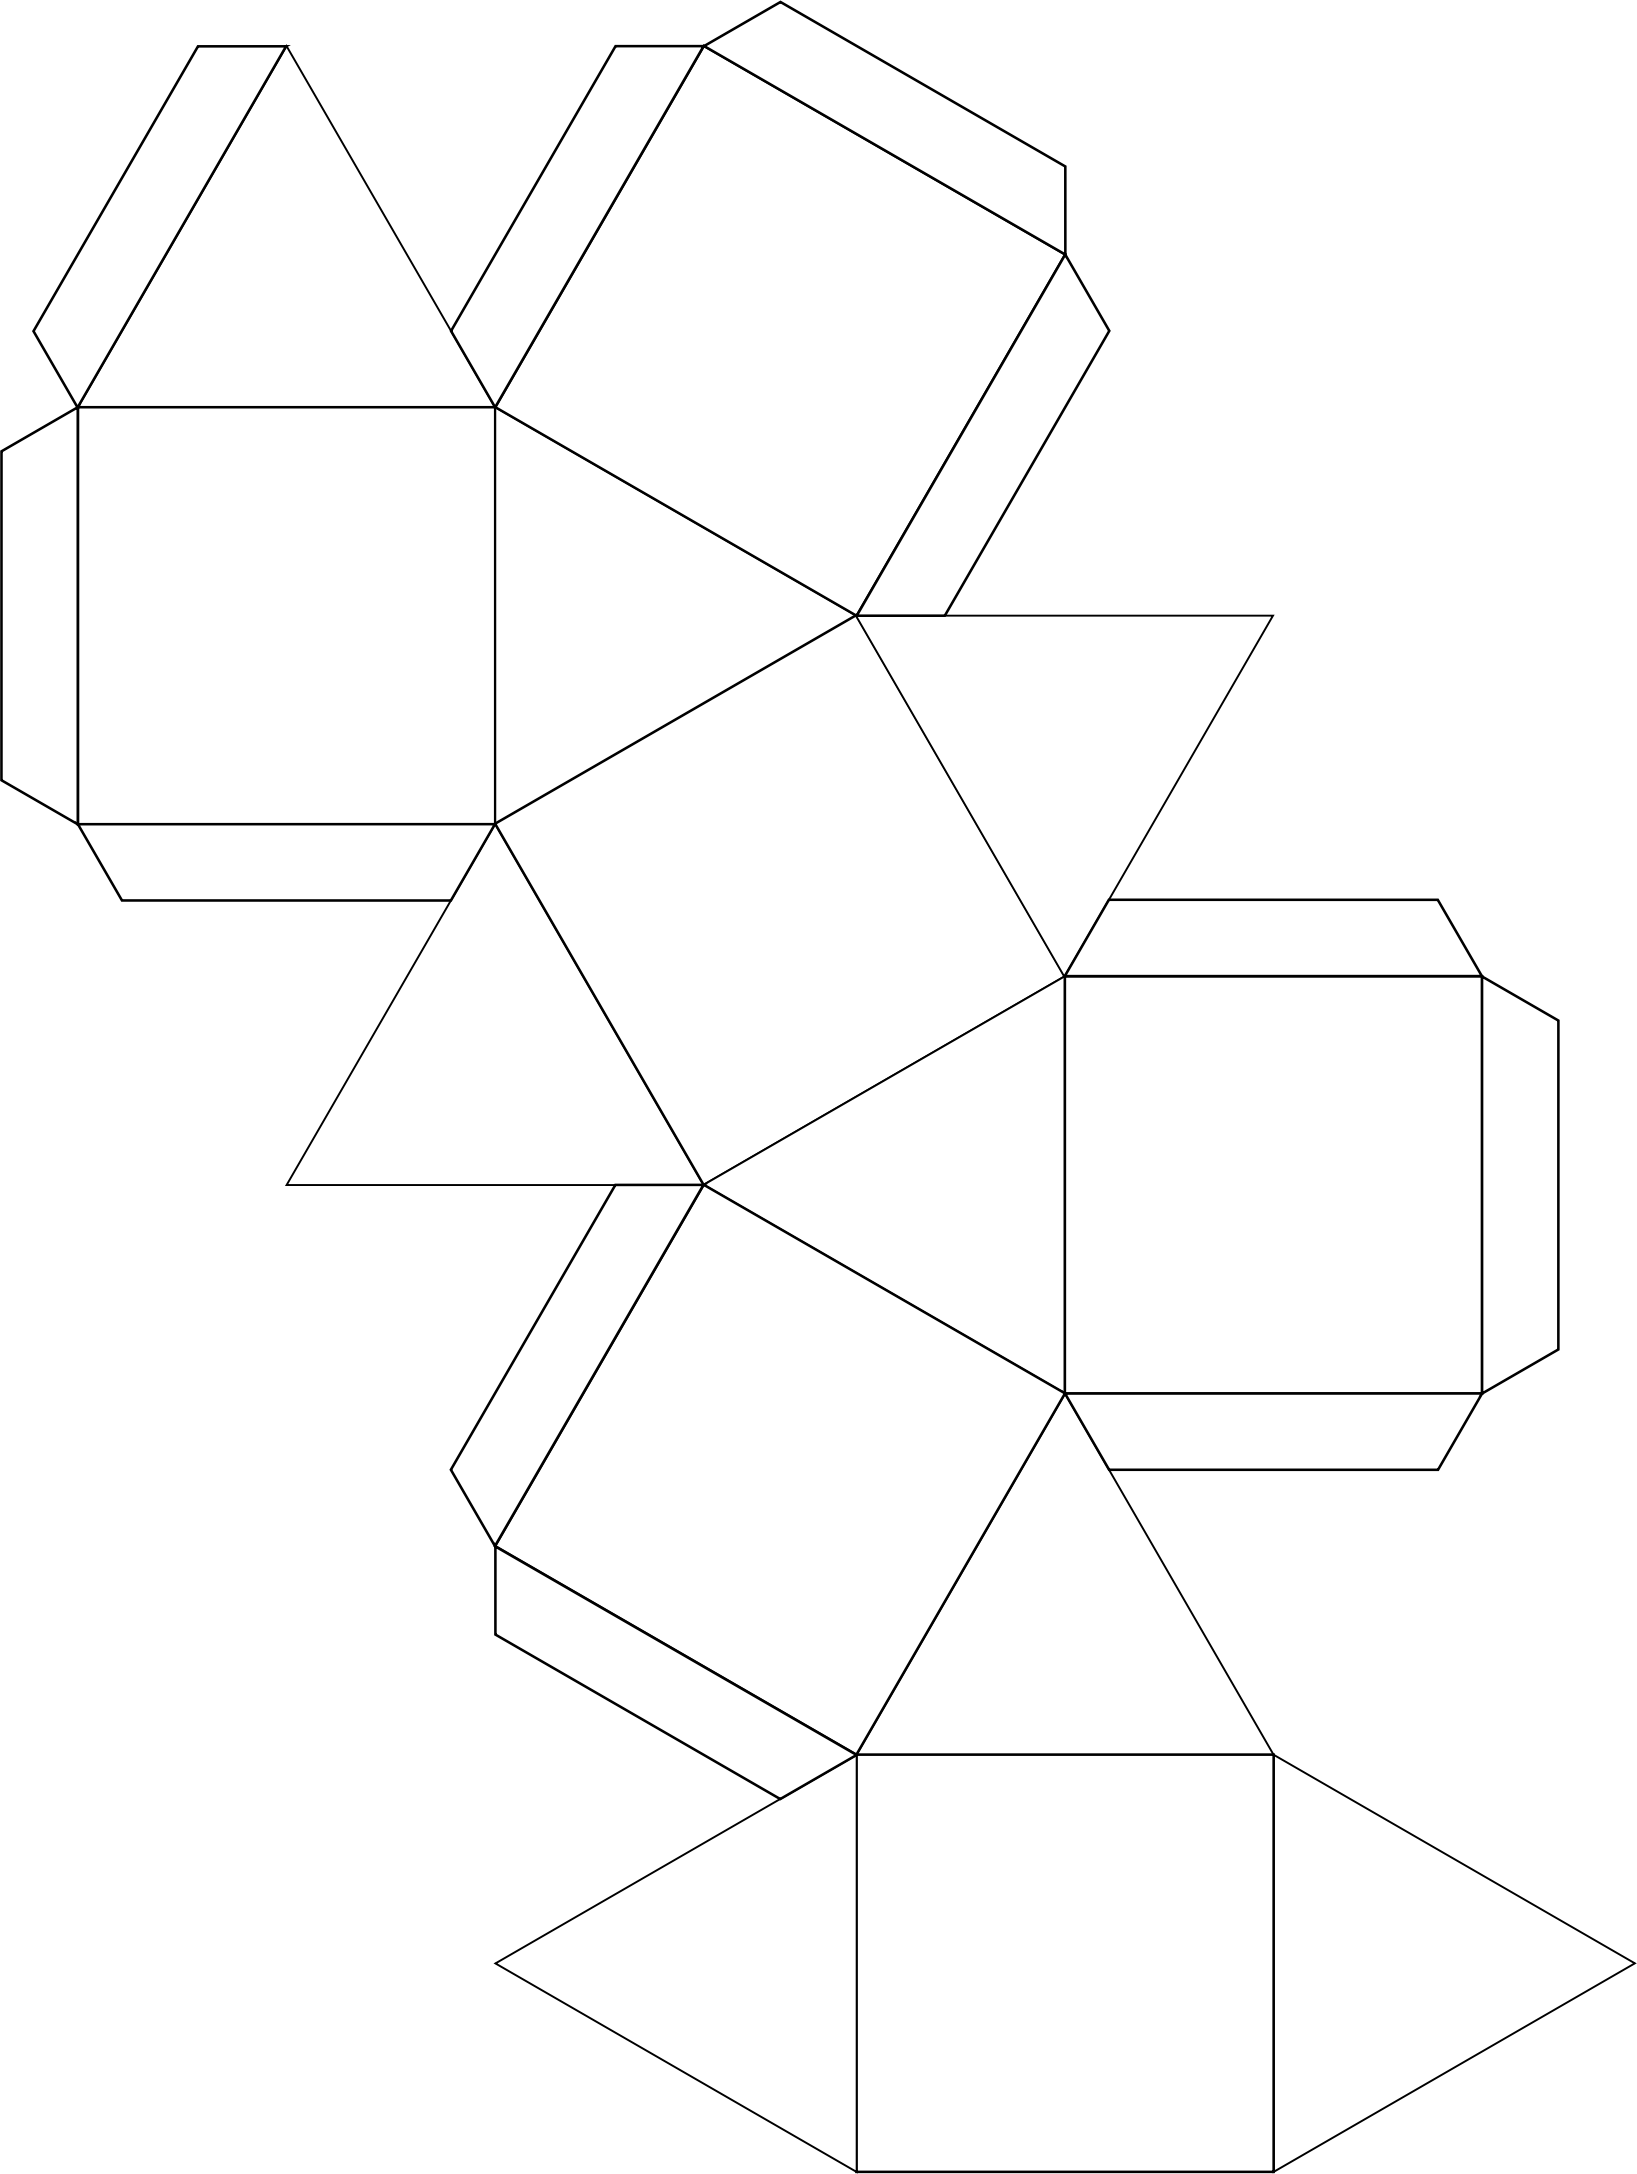 Cubocdehedron for Coloring (Ornament) by rejon